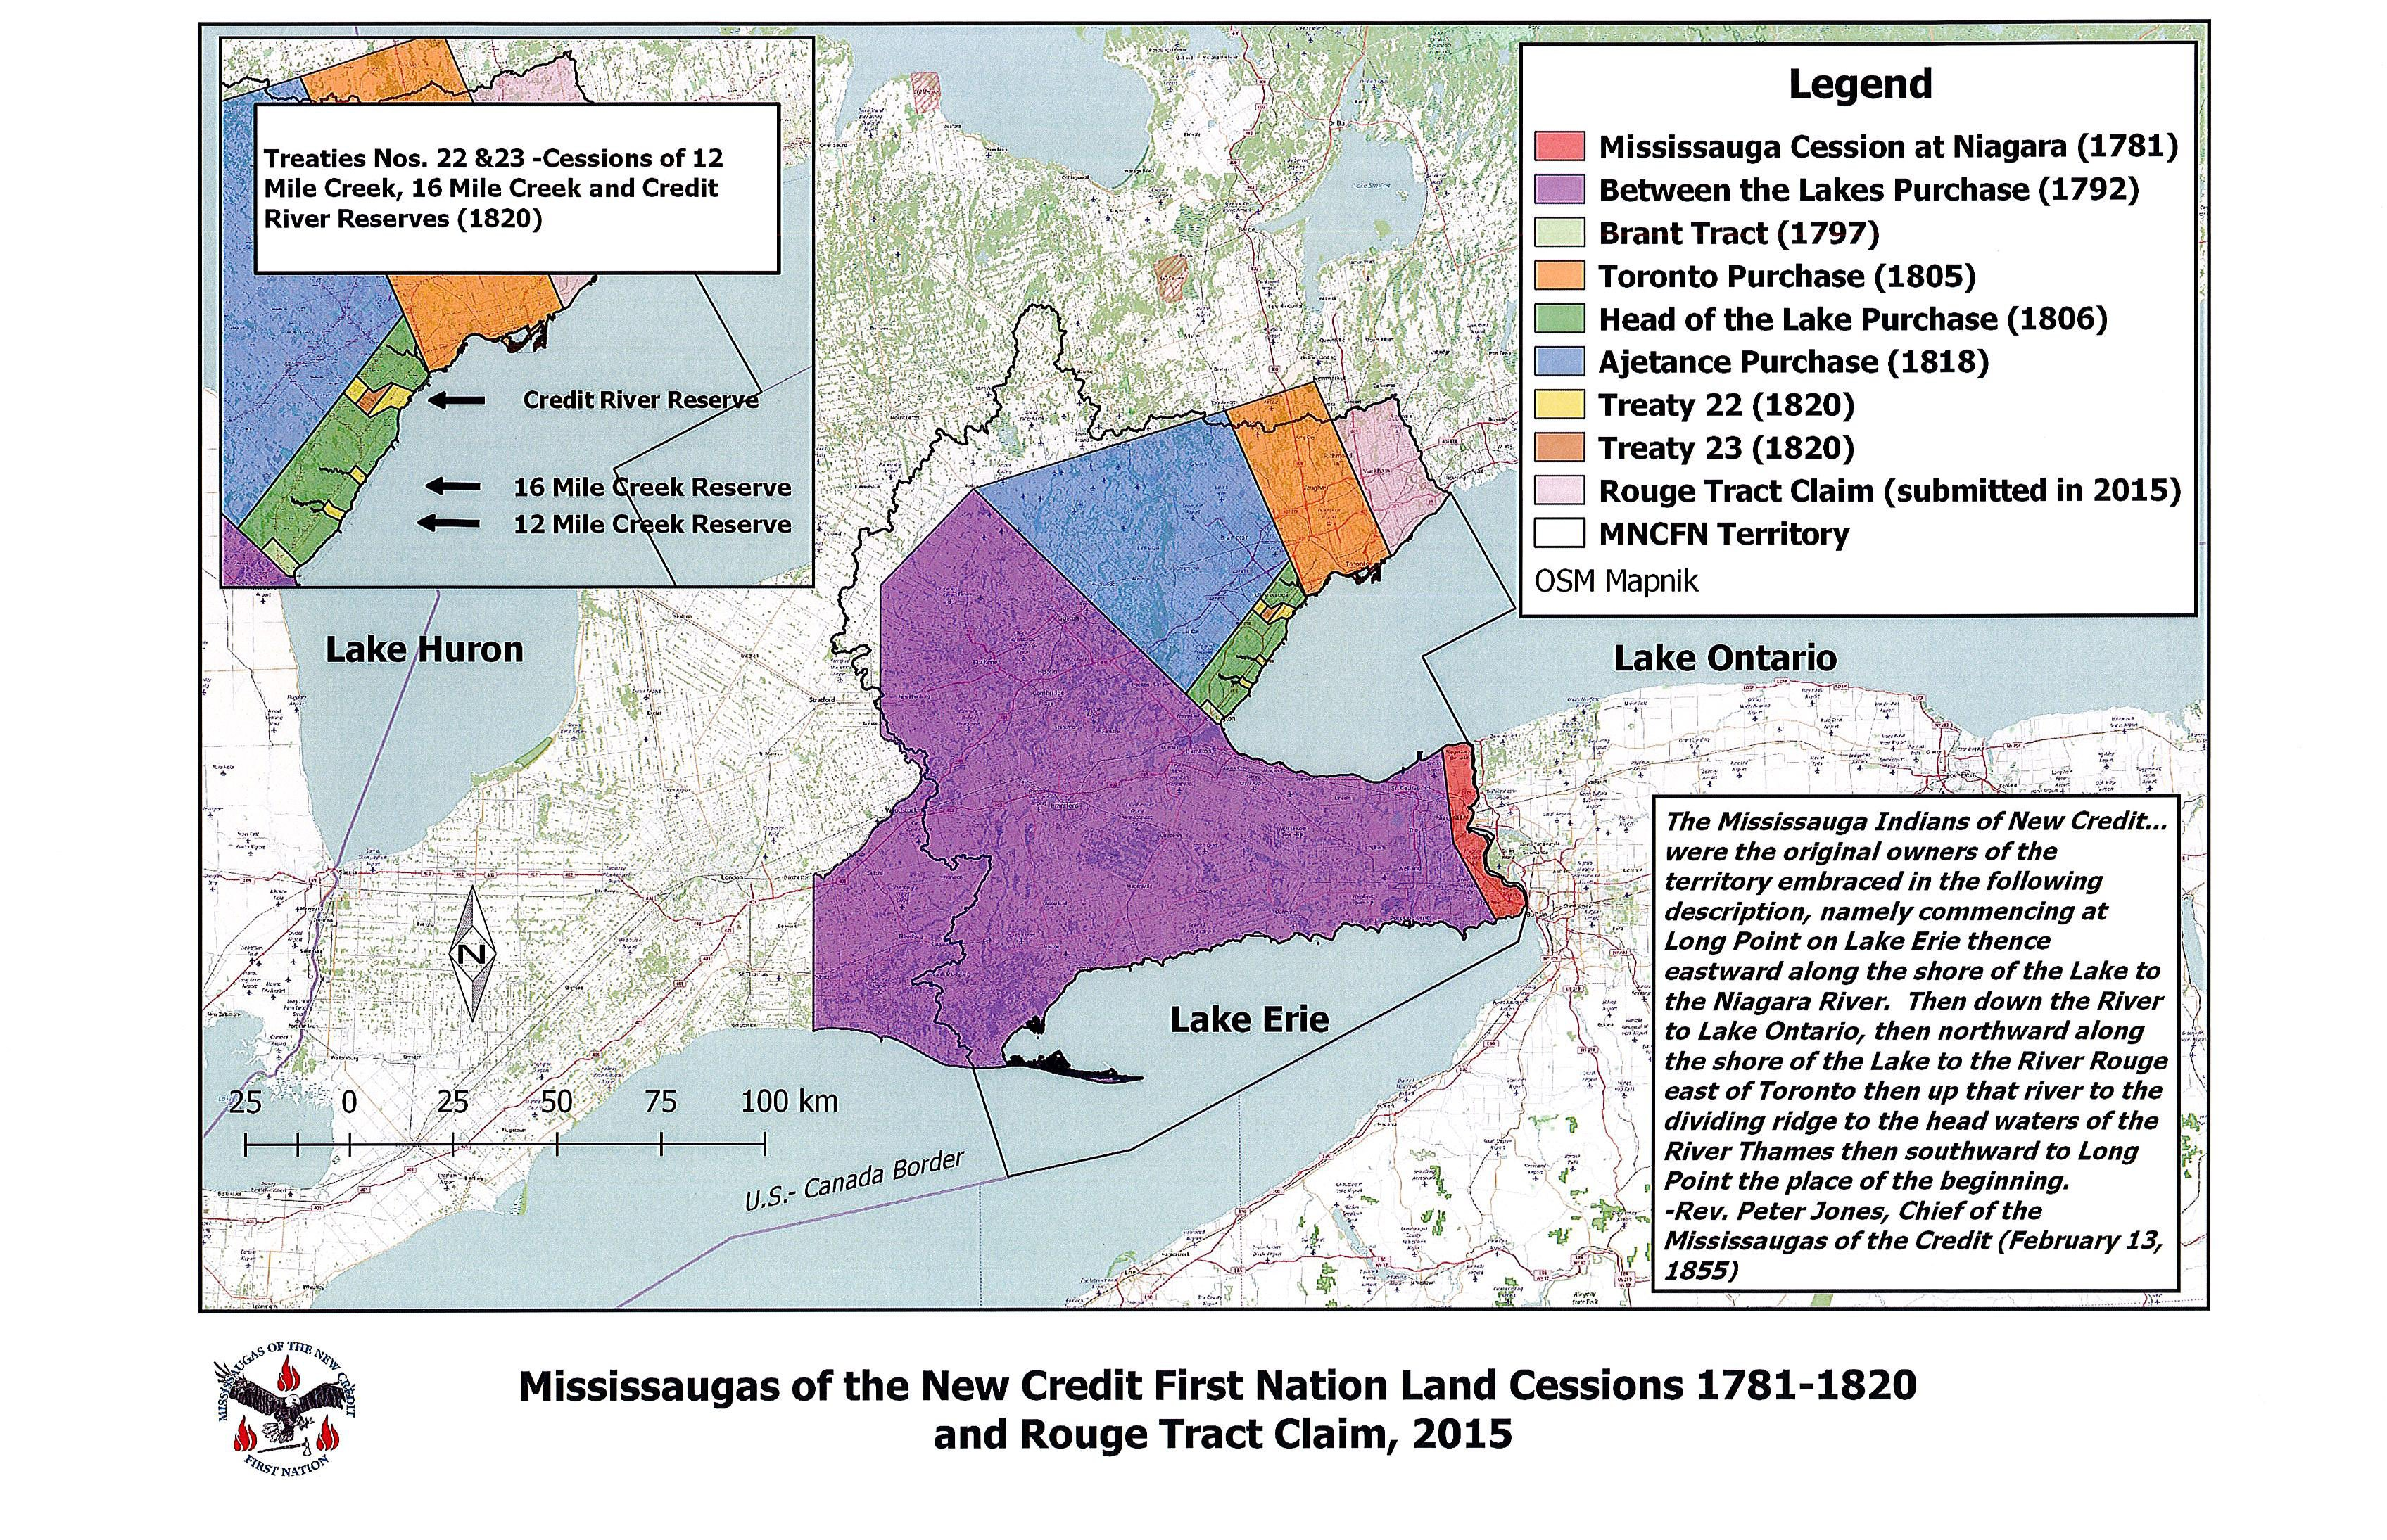 A map of the land cessions of the Missisaugas of the New Credit First Nation.